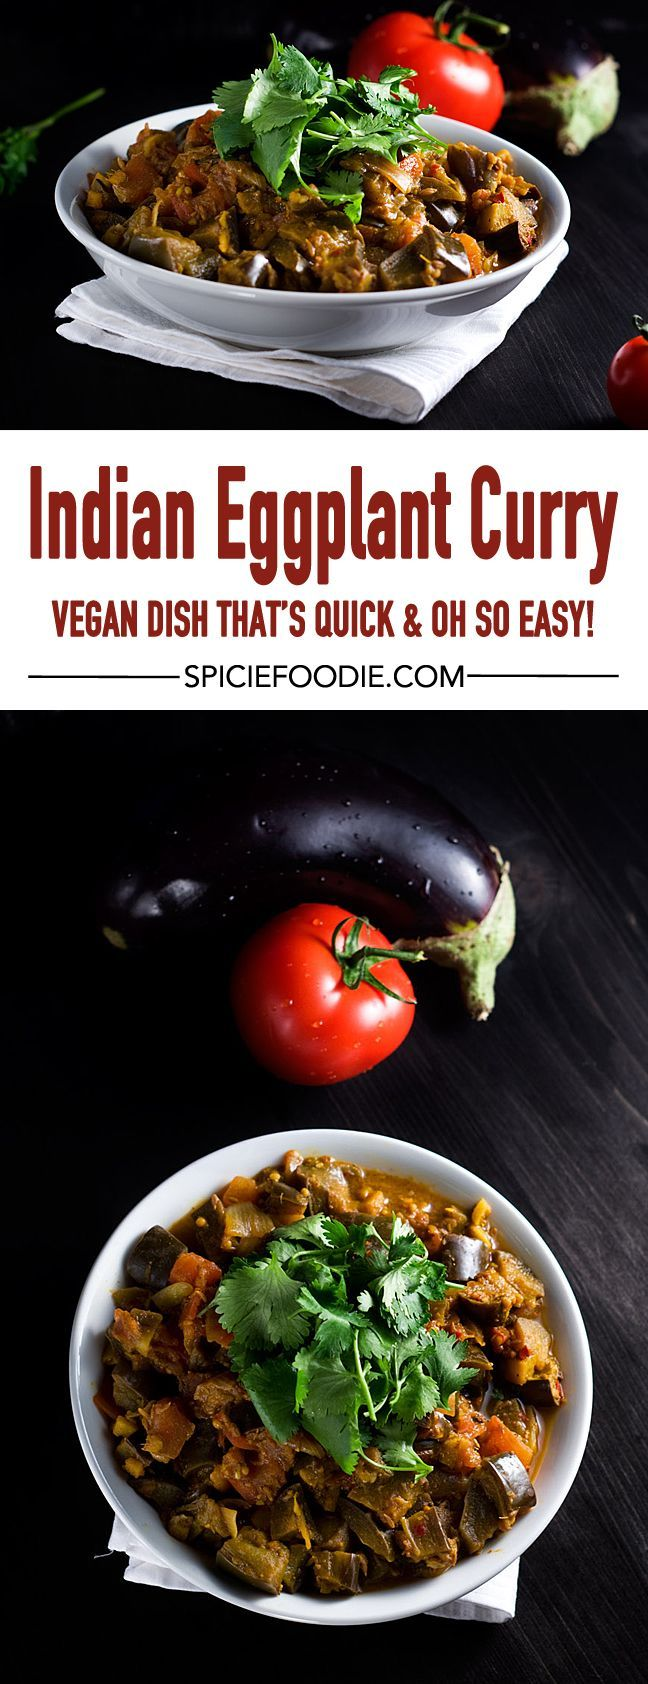 Indian Eggplant Curry | This simplified recipe takes less time to prepare than the traditional one. #vegan